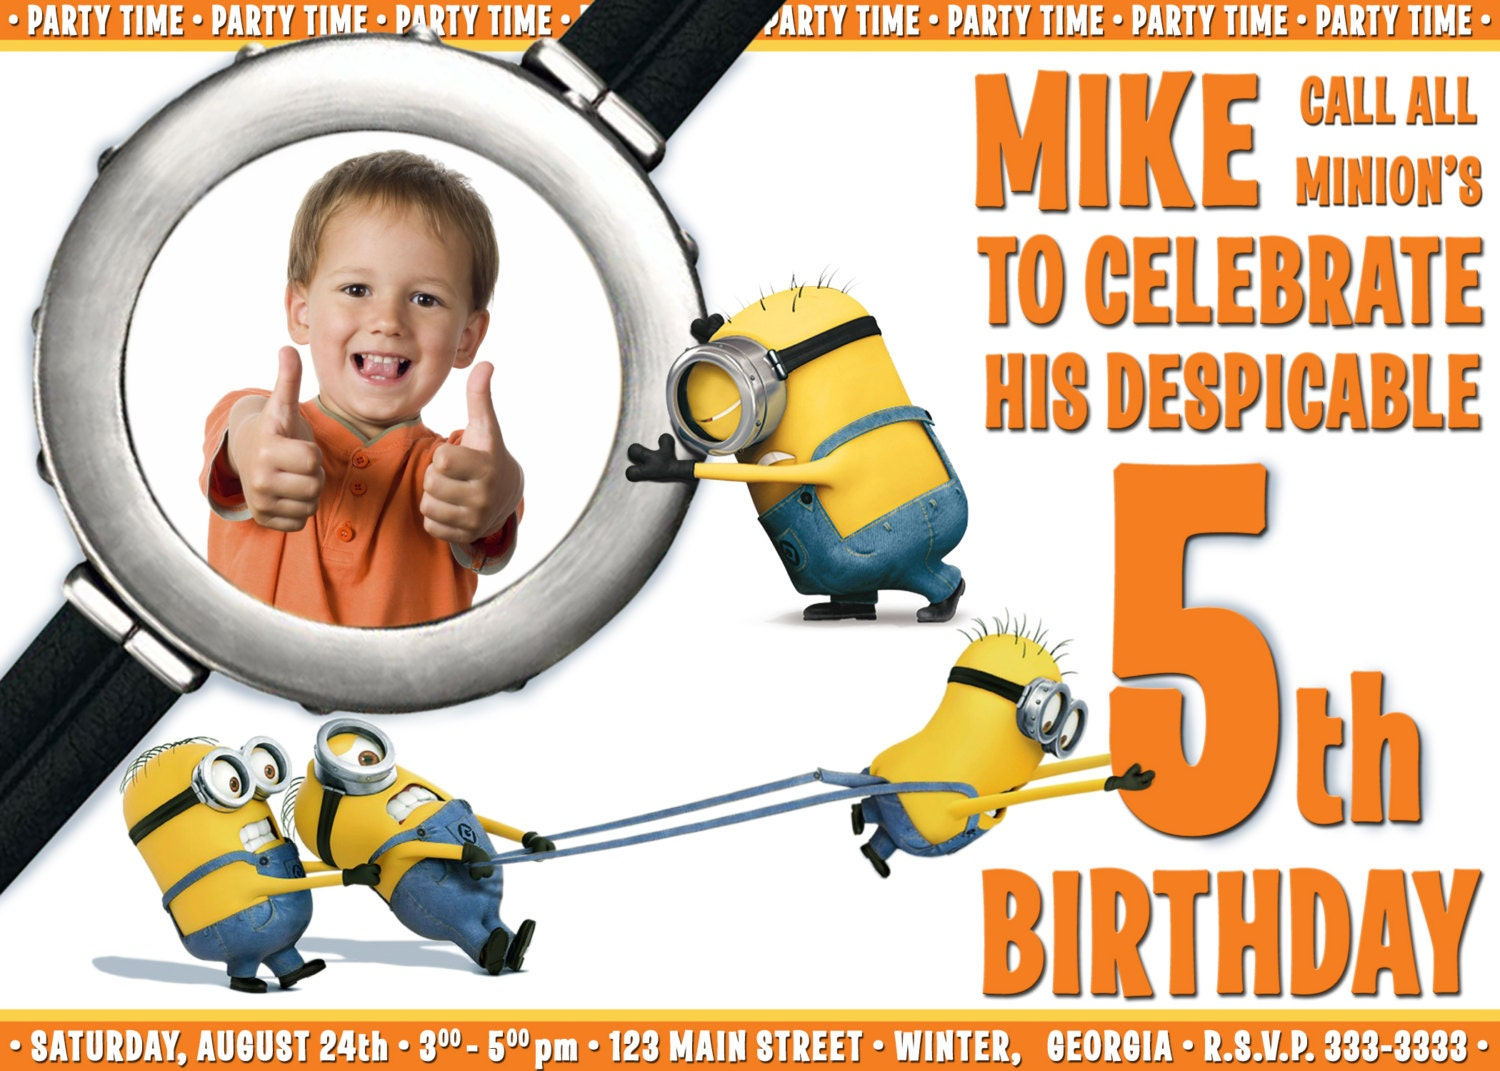 Despicable Me 1st Birthday Invitations - 2018 images & pictures ...